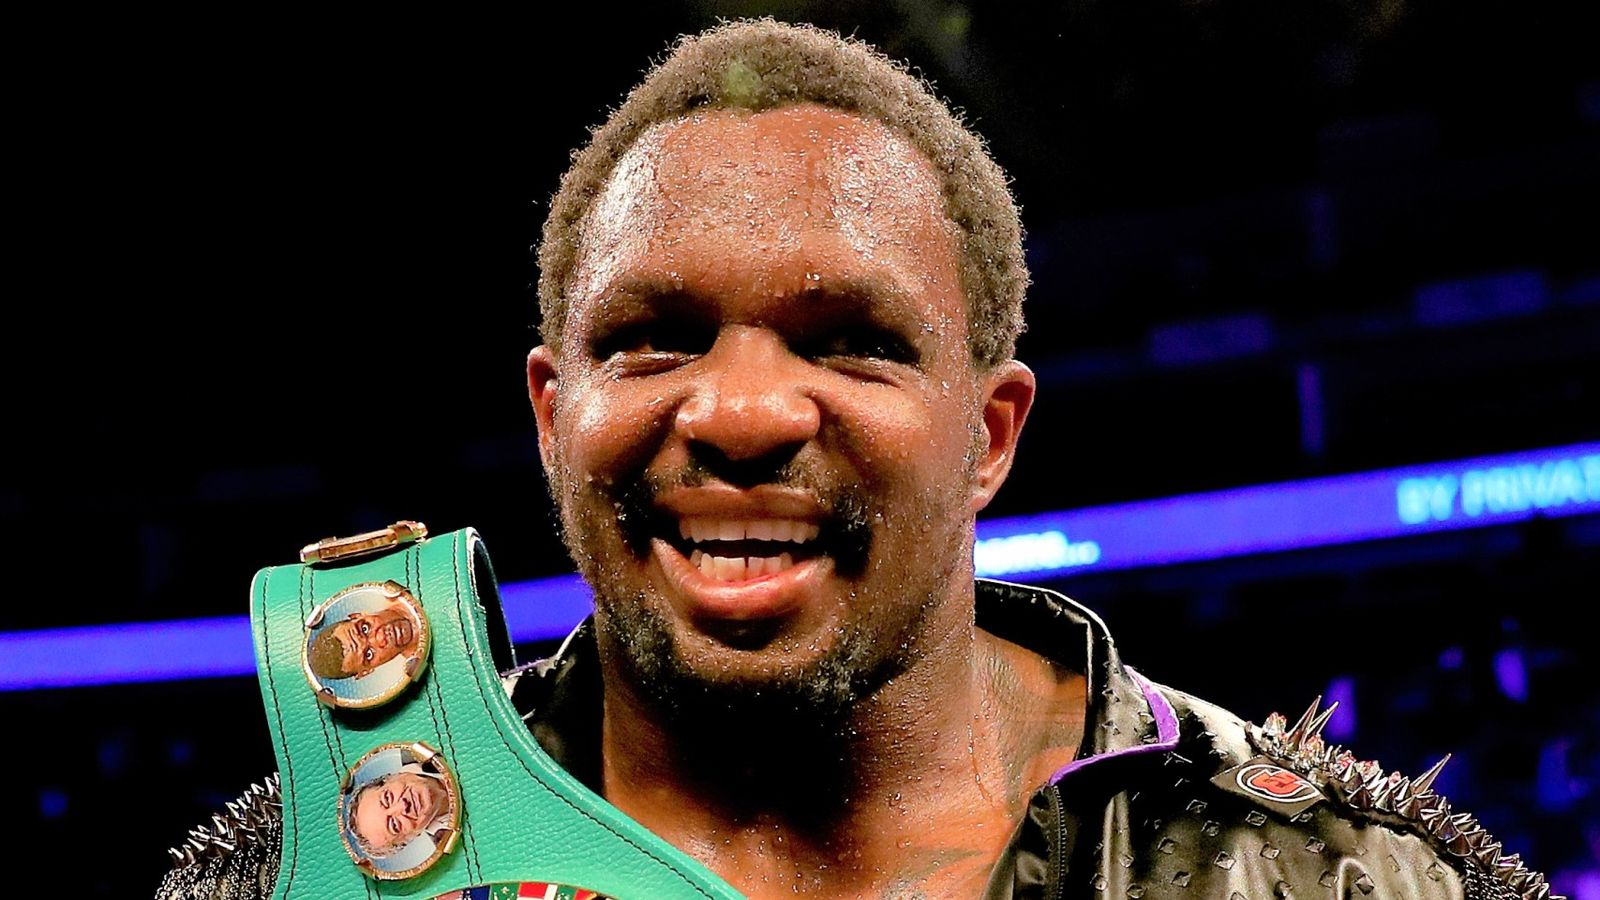 Dillian Whyte says Tyson Fury will try to avoid WBC mandatory title fight but vows to 'break him down'